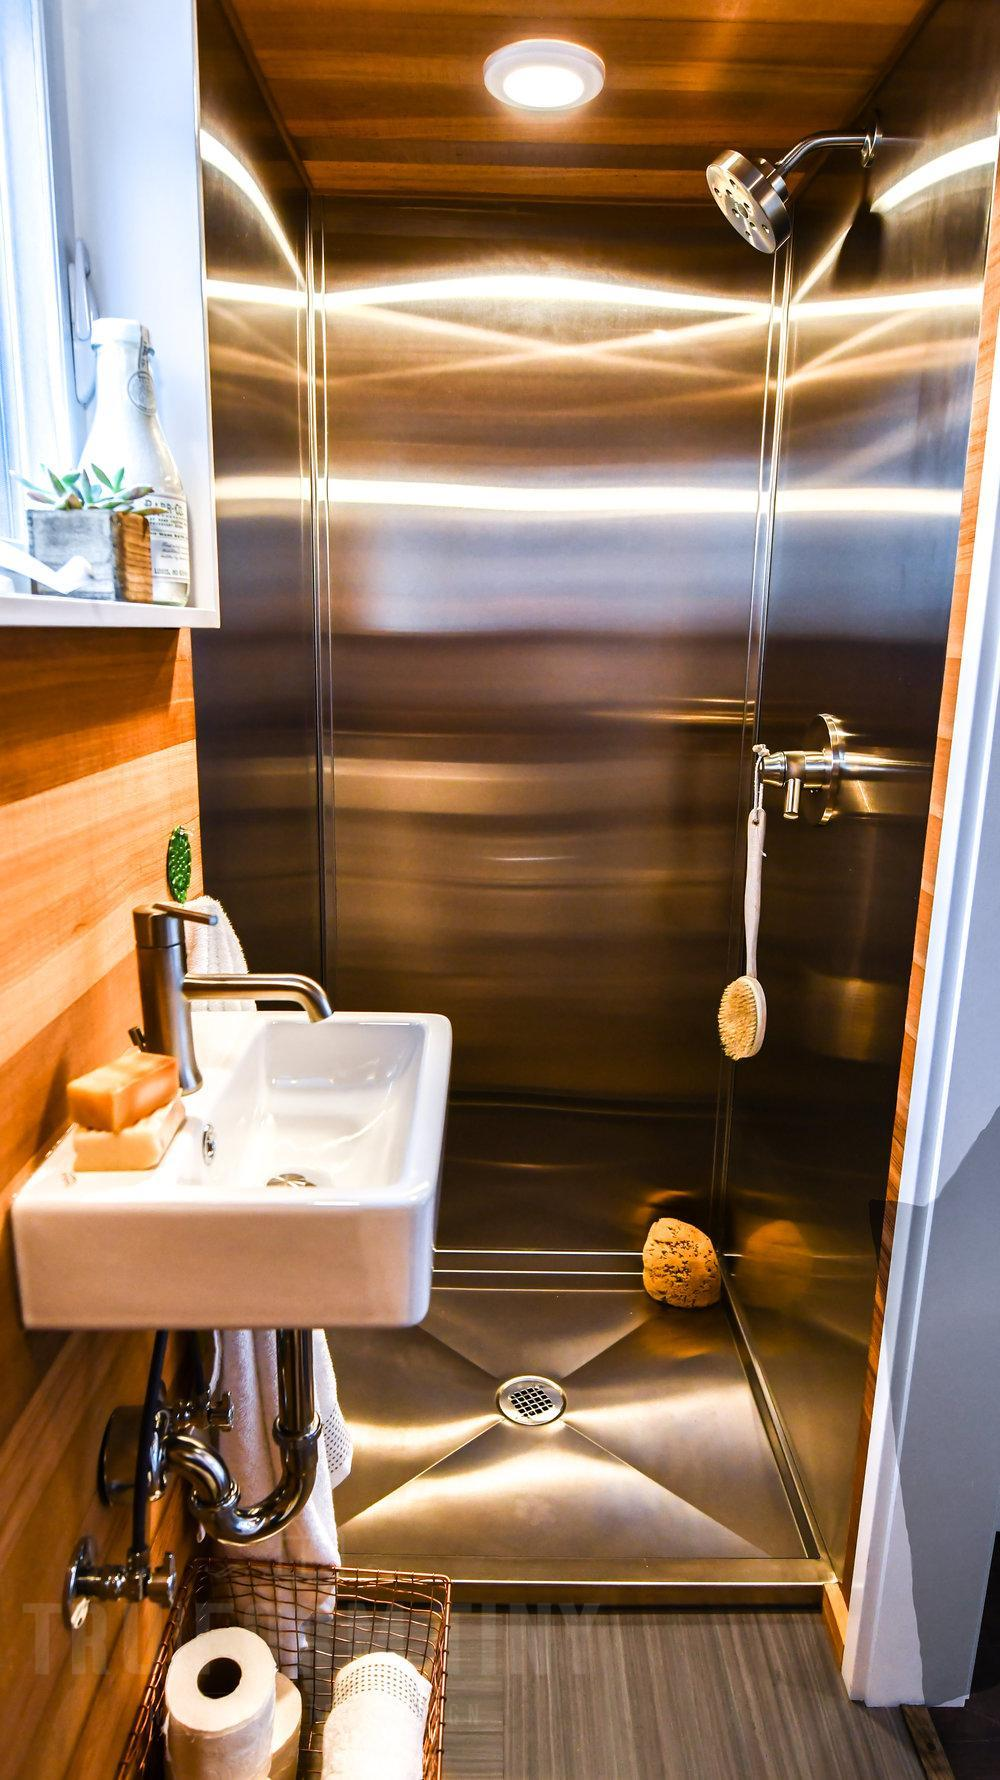 The bathroom includes a custom built-in shower